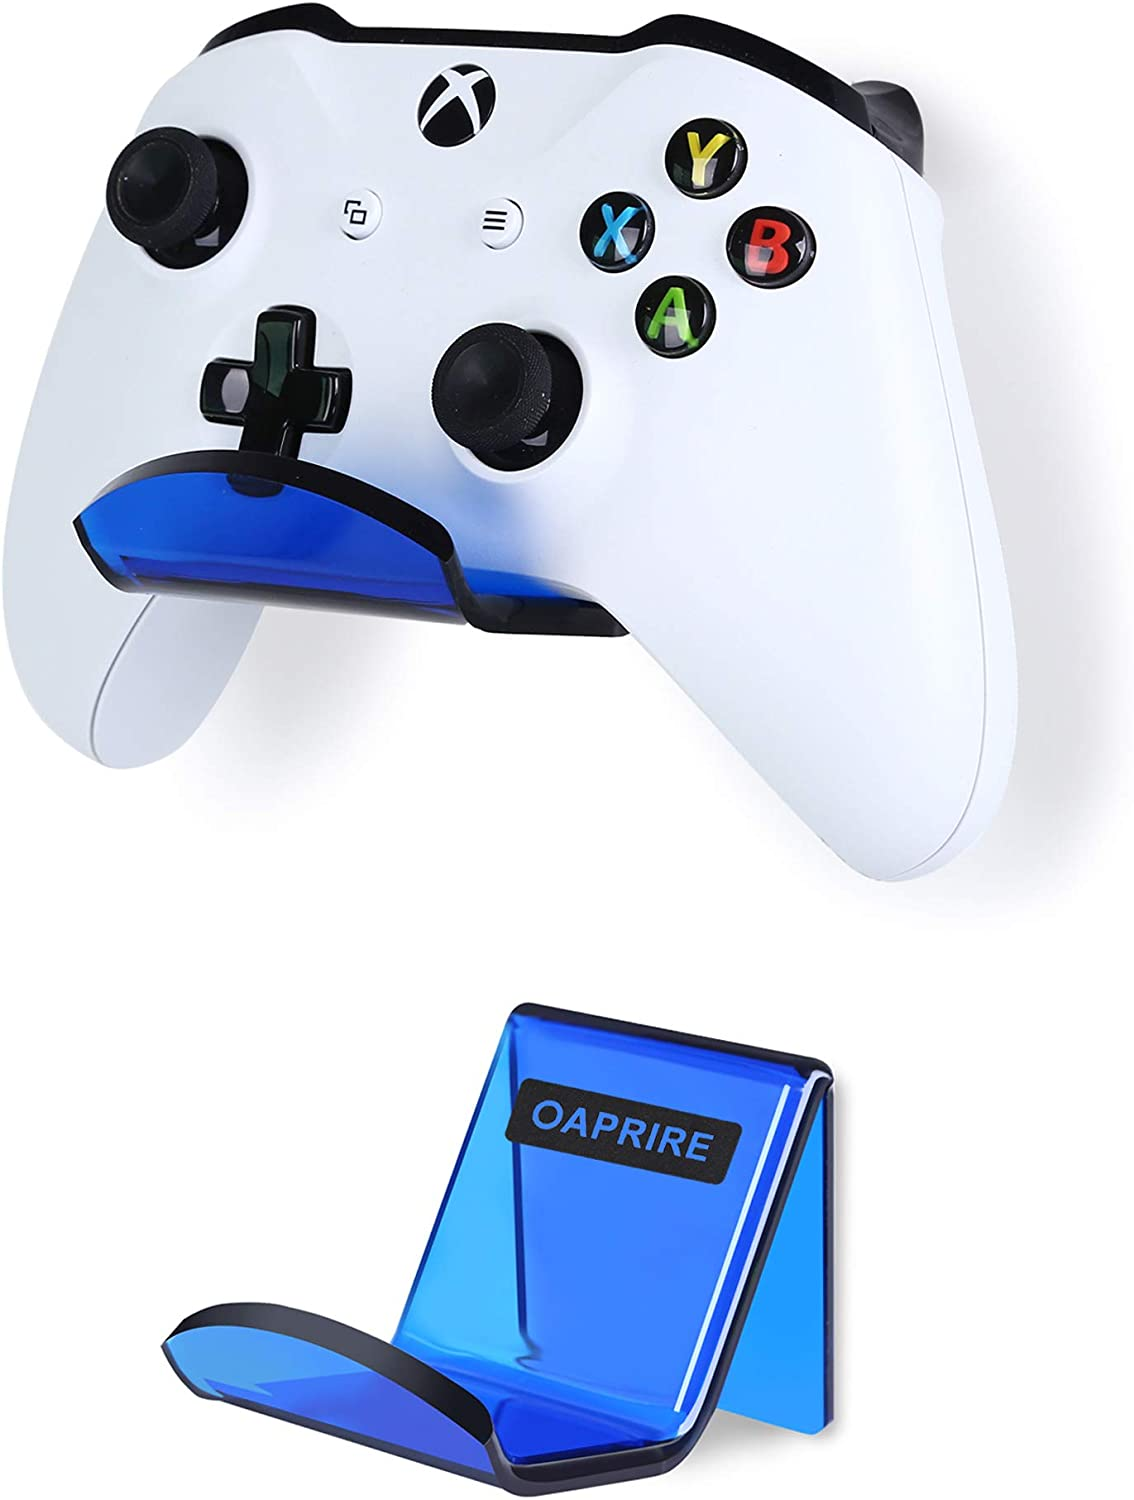 OAPRIRE Controller Holder Stand Wall Mount (2 Pack) - Perfect Display and Storing Modern&Retro Controller - Best Controller Hanger Kit with Cable Clips - Create Exclusive Game Fortresses (Clear Blue)